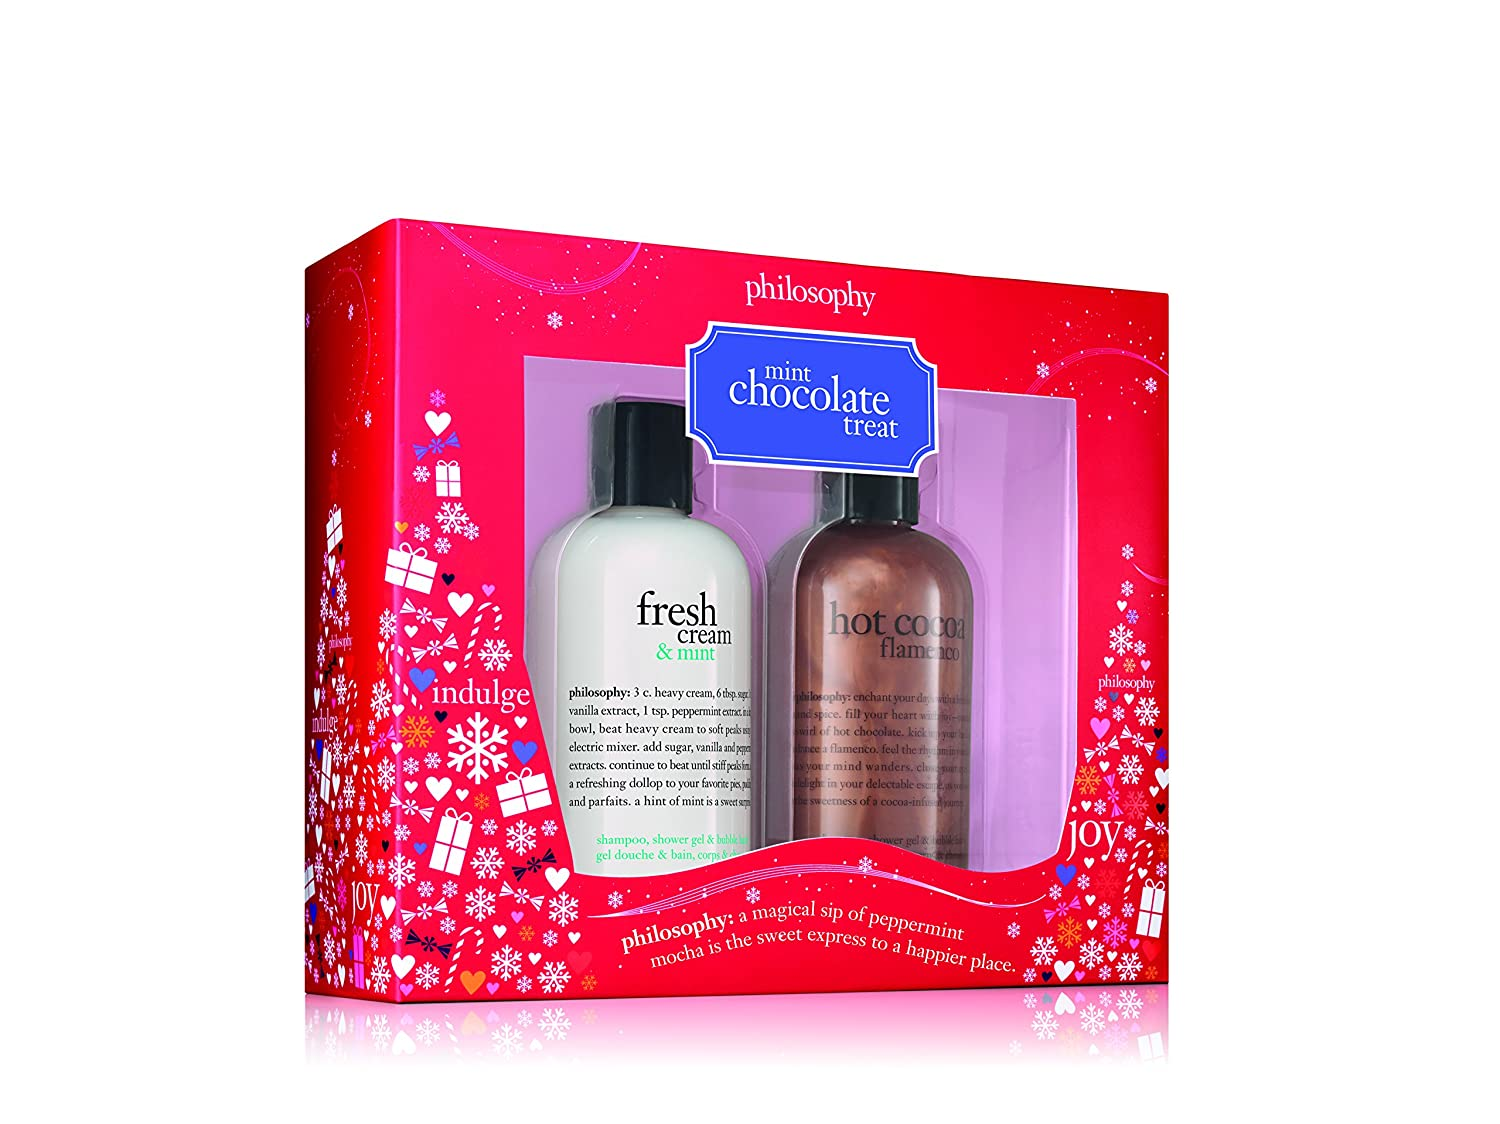 Philosophy - Mint Chocolate Treat Gift Set B074WB9PP5